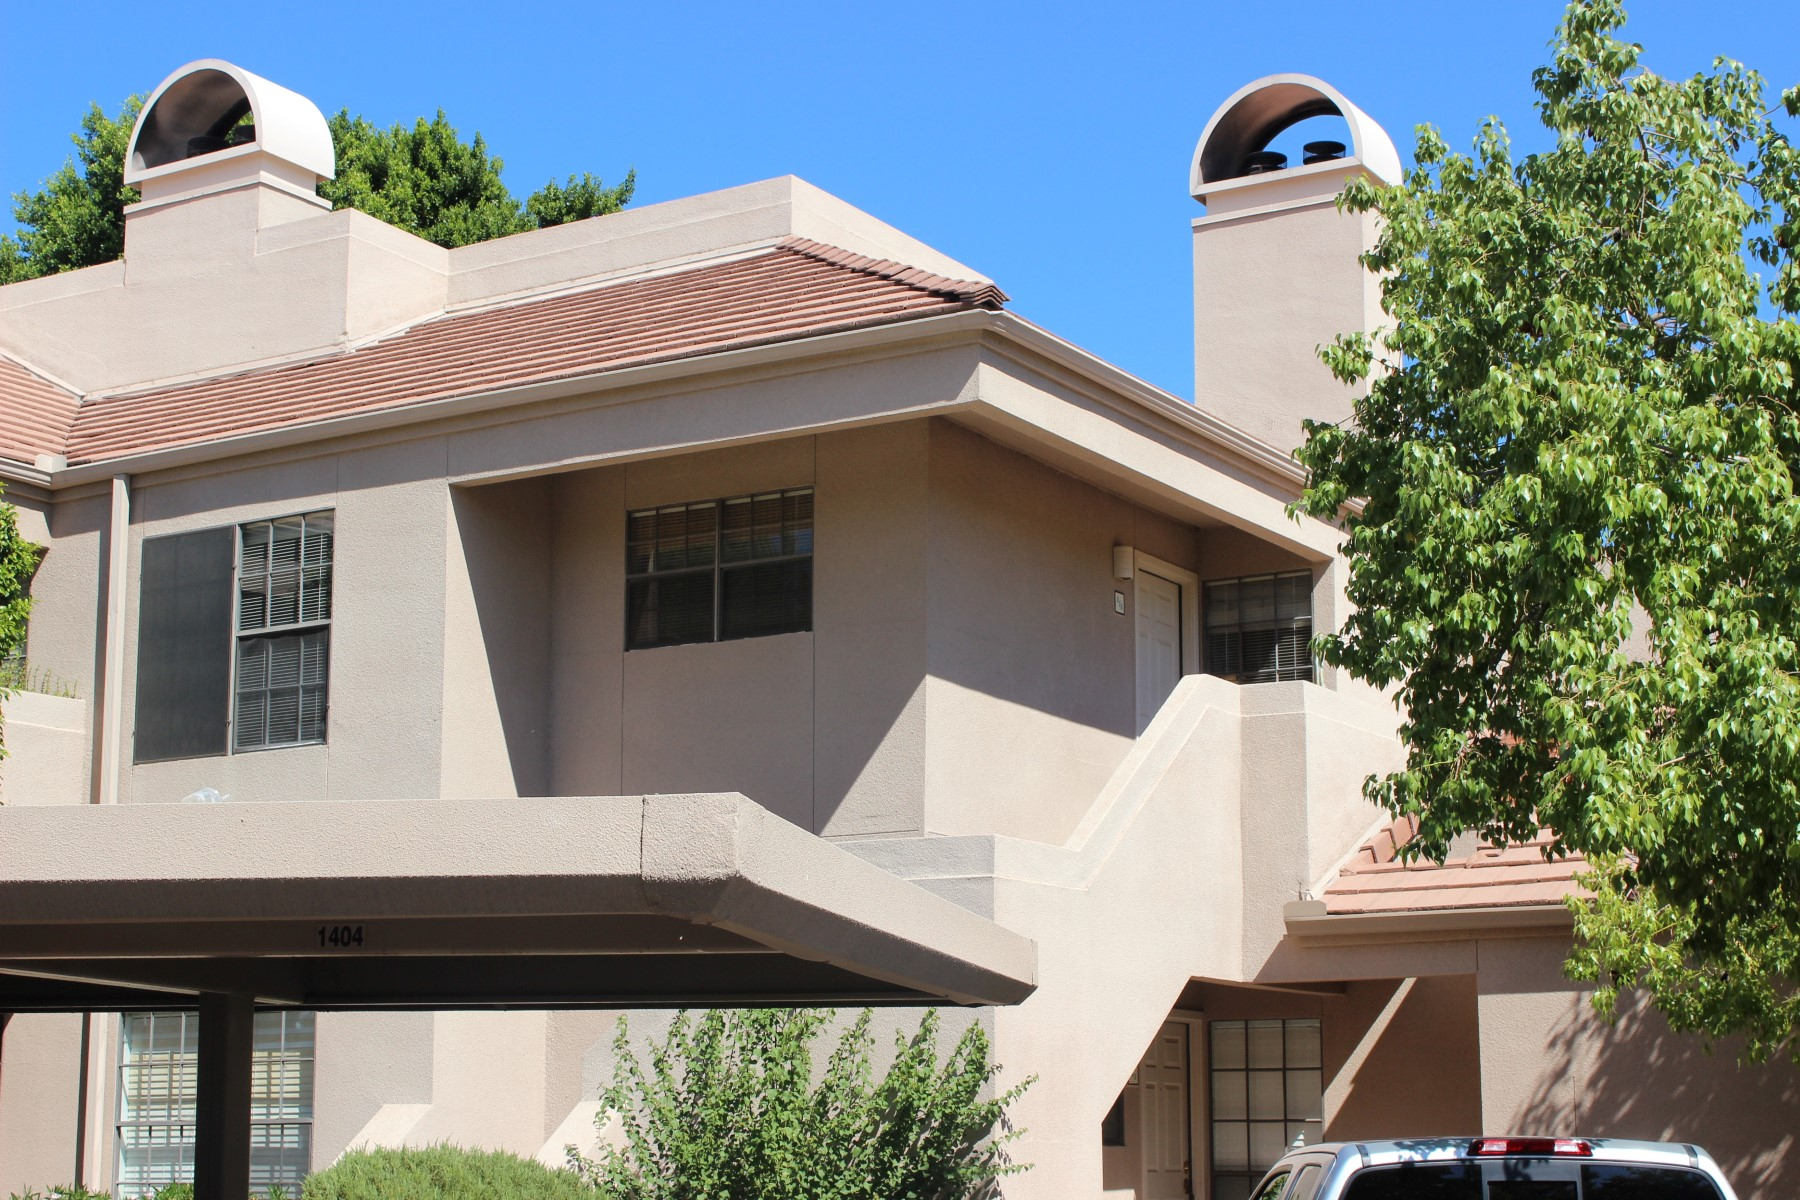 Apartment for Sale at Highly desirable convenient Scottsdale location 5950 N 78th St 213 Scottsdale, Arizona 85250 United States